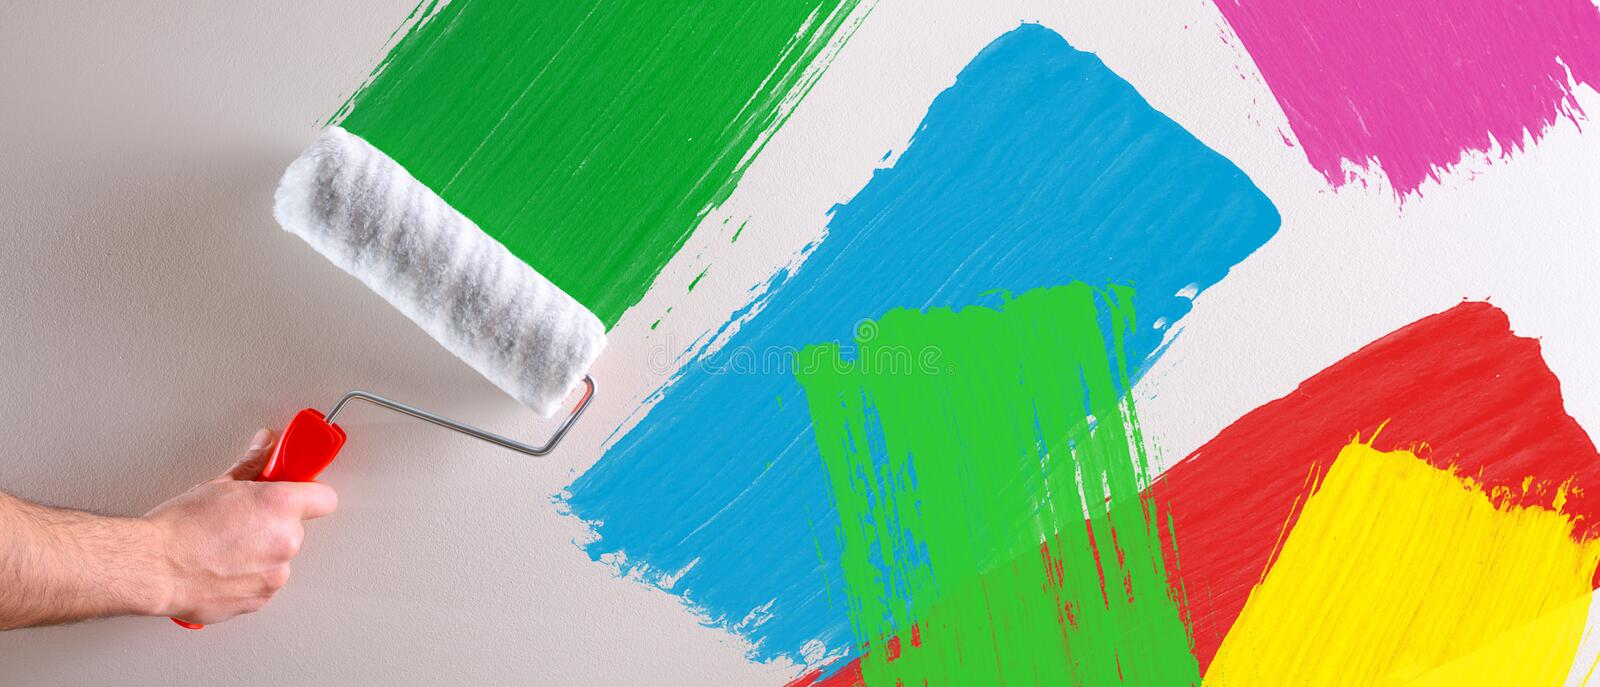 Concept of hand painting multicolored samples on wall stock photo